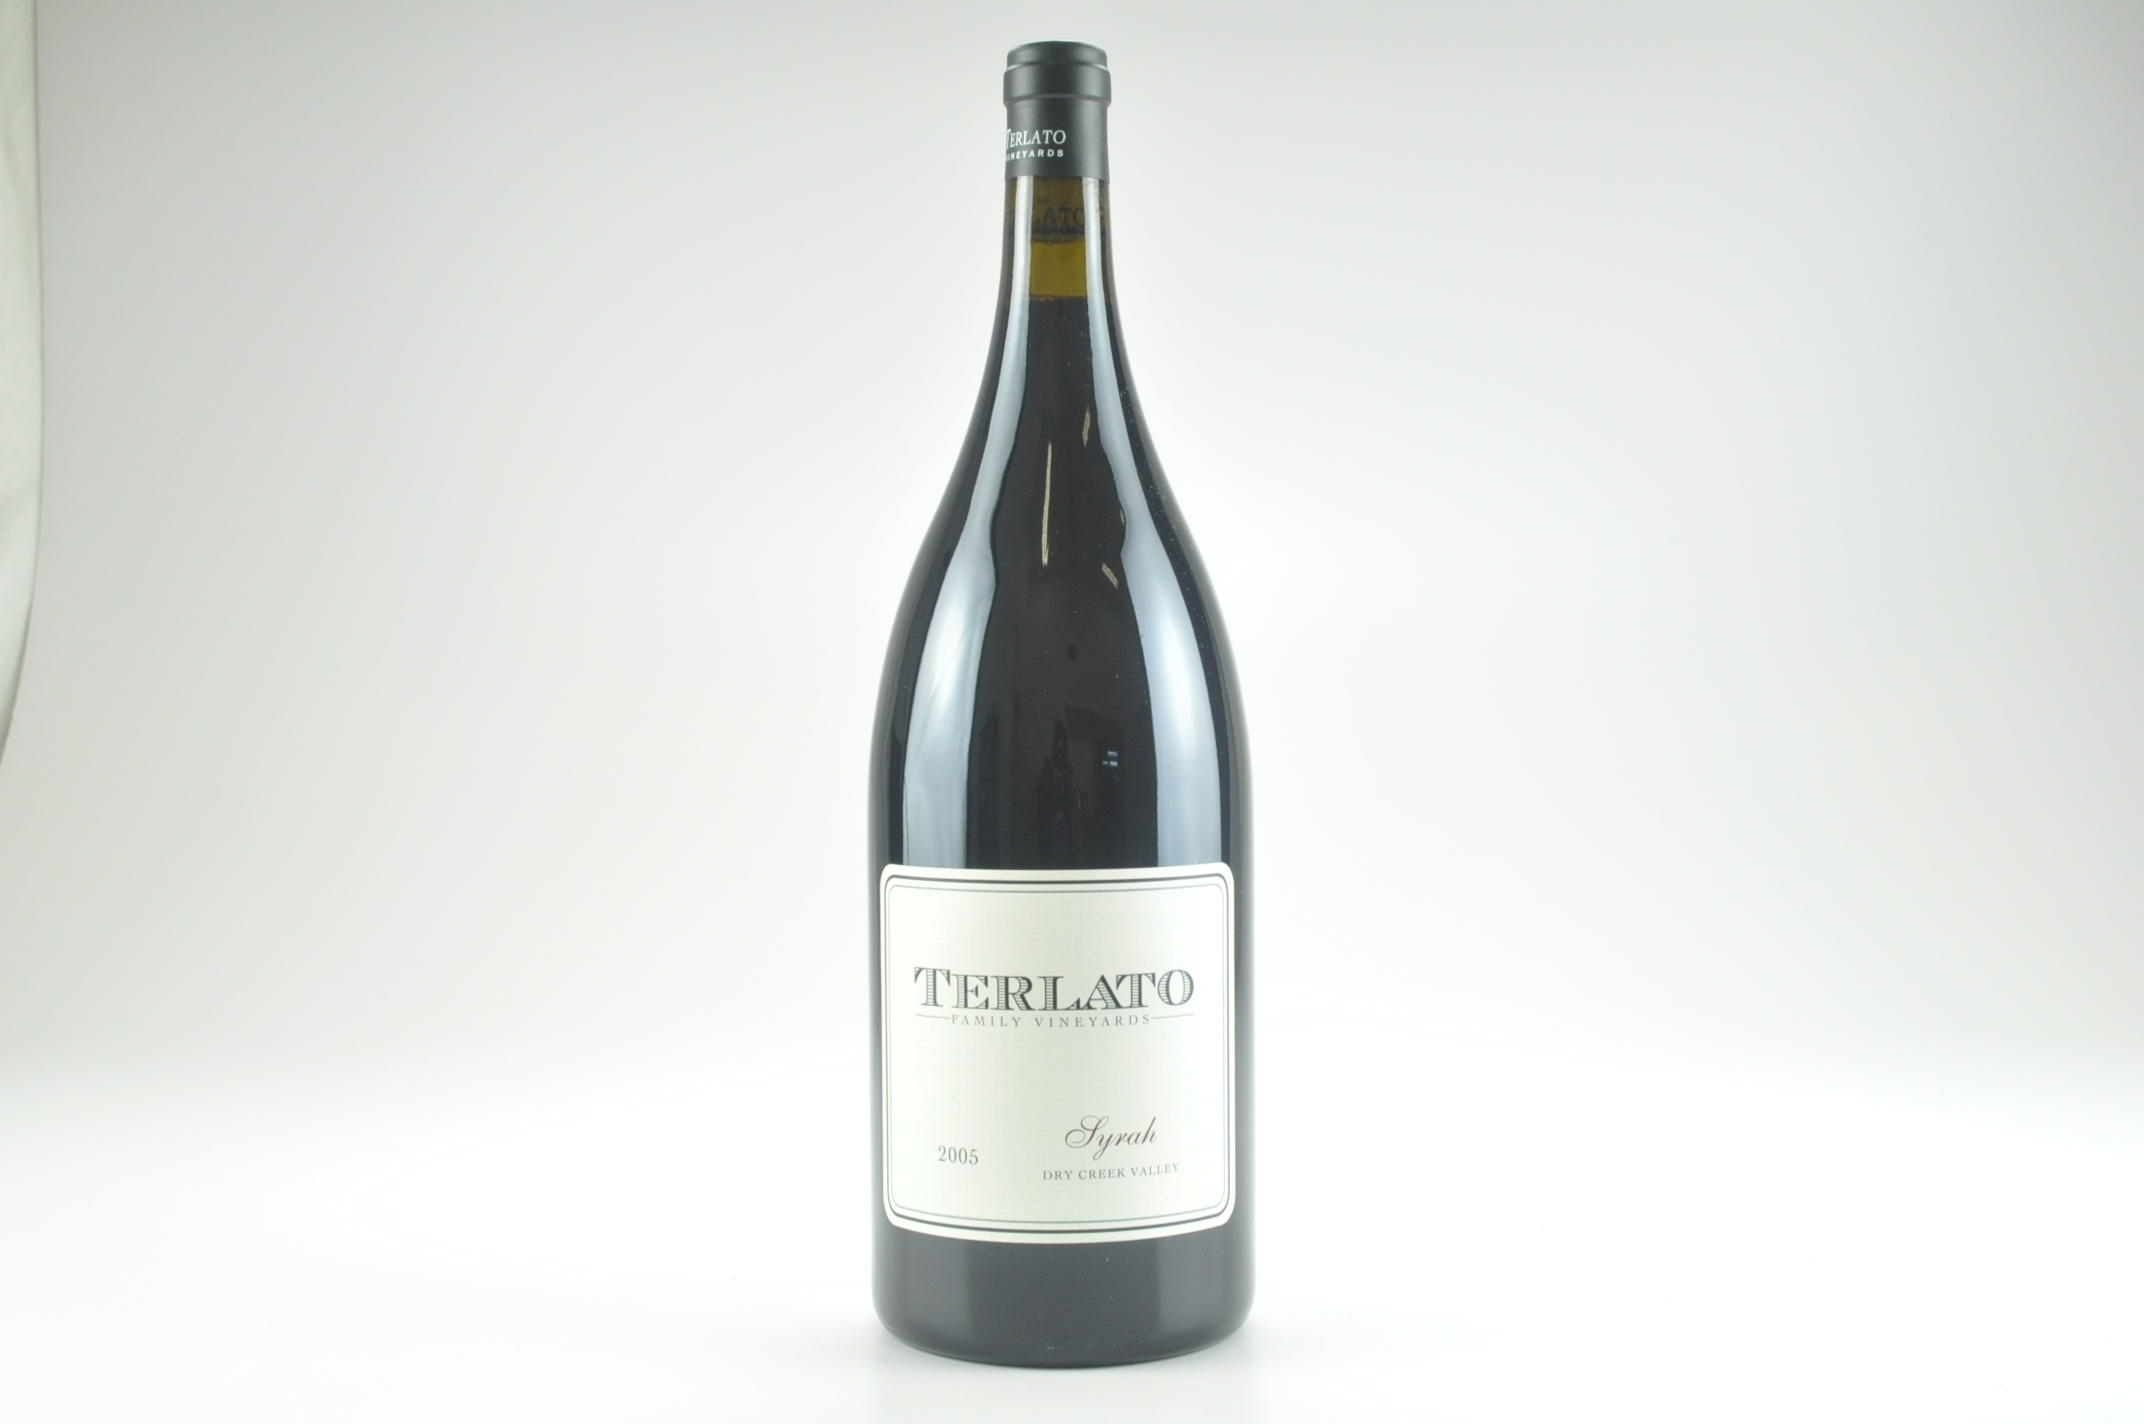 2005 Terlato Vineyard Syrah 1.5 L, Dry Creek Valley